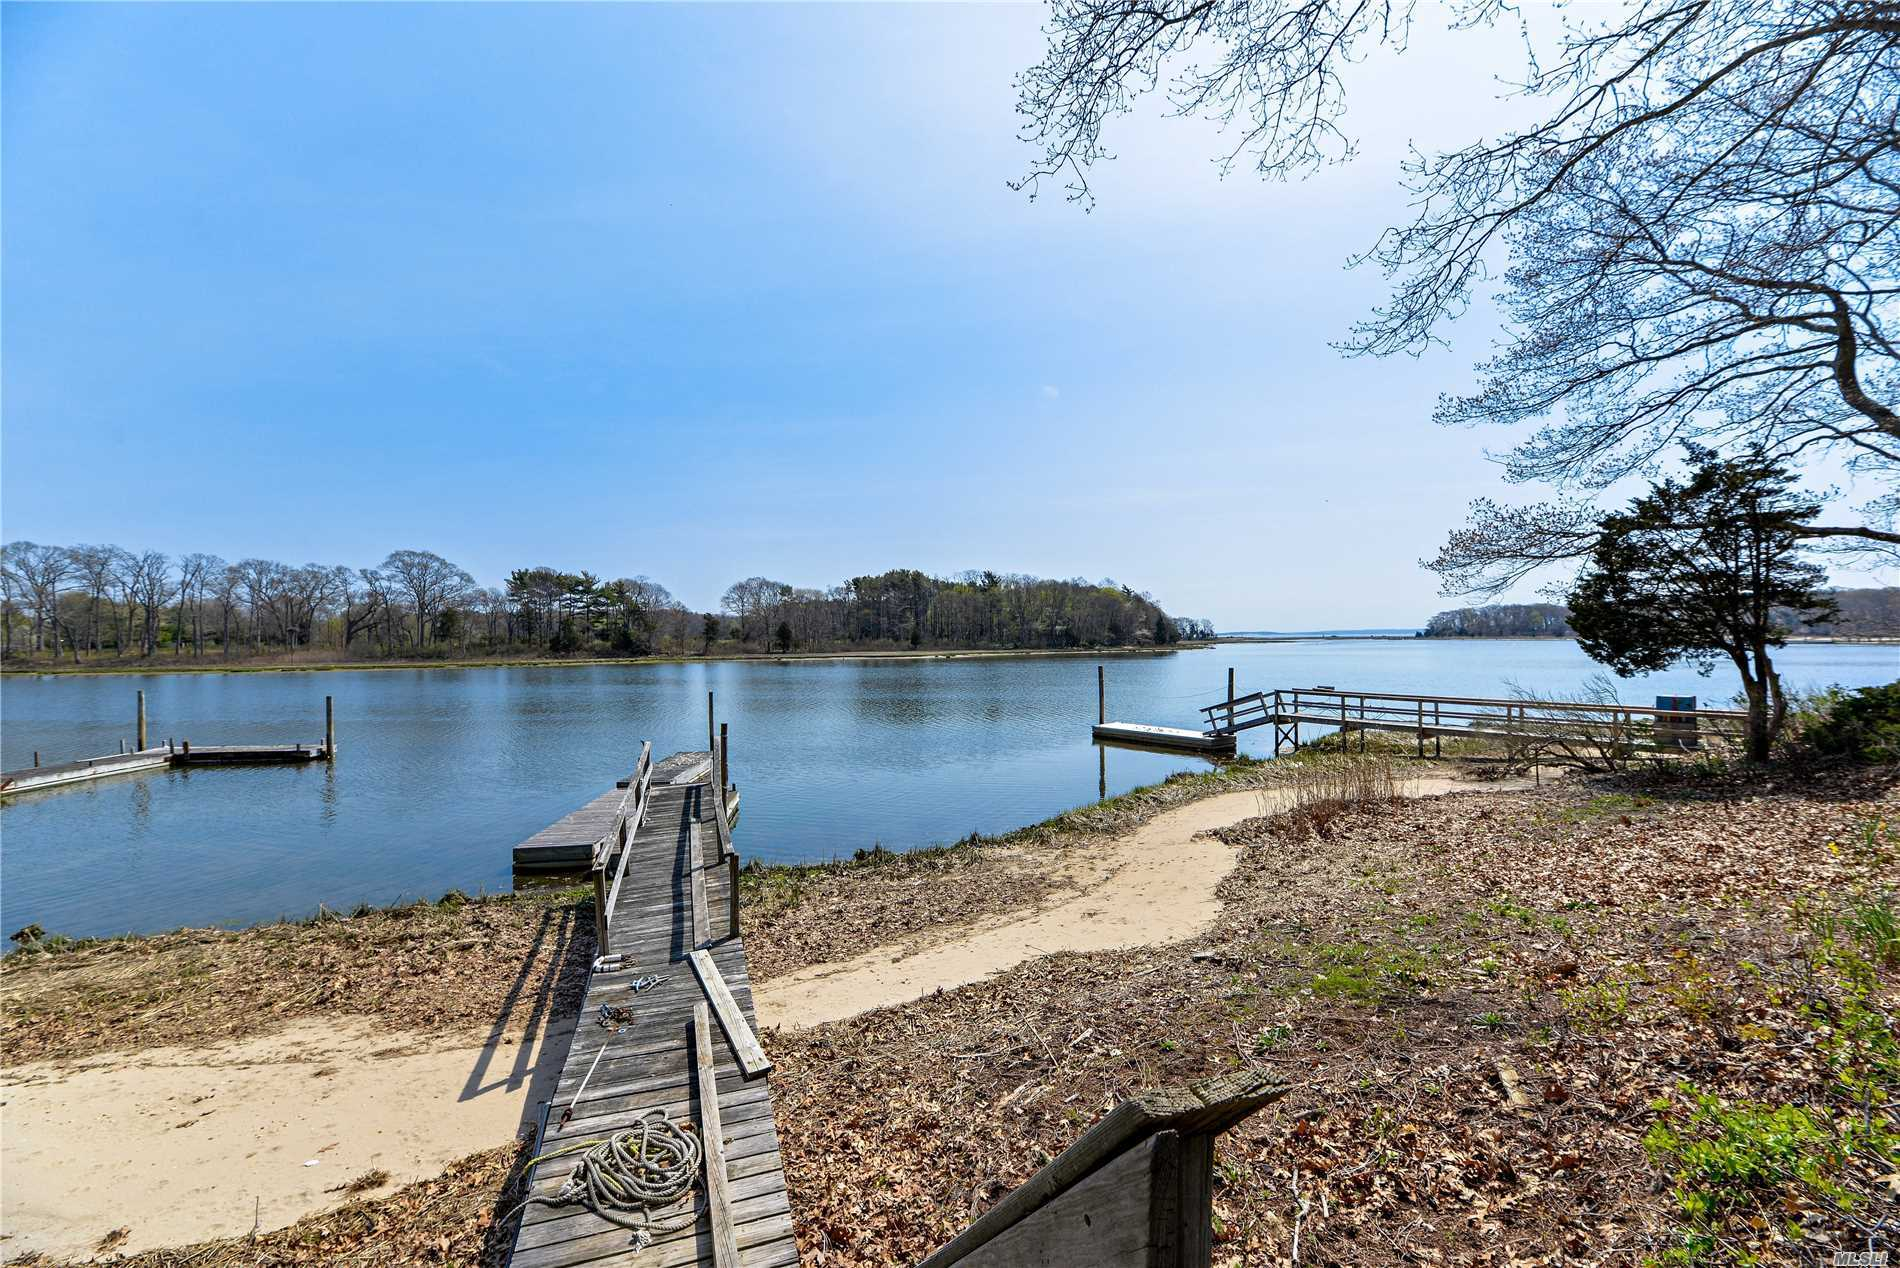 Location Says It All! 60'S Ranch, Waiting To Be Re-Imagined. 2 Bed. 1.5 Ba. 110 Feet Of Sandy Richmond Creek Front. Dock W/Deep Water Access To Peconic Bay. 2 Fireplaces. Hardwood Floors. Vast Views Of Mouth Of The Creek And Bay Beyond.